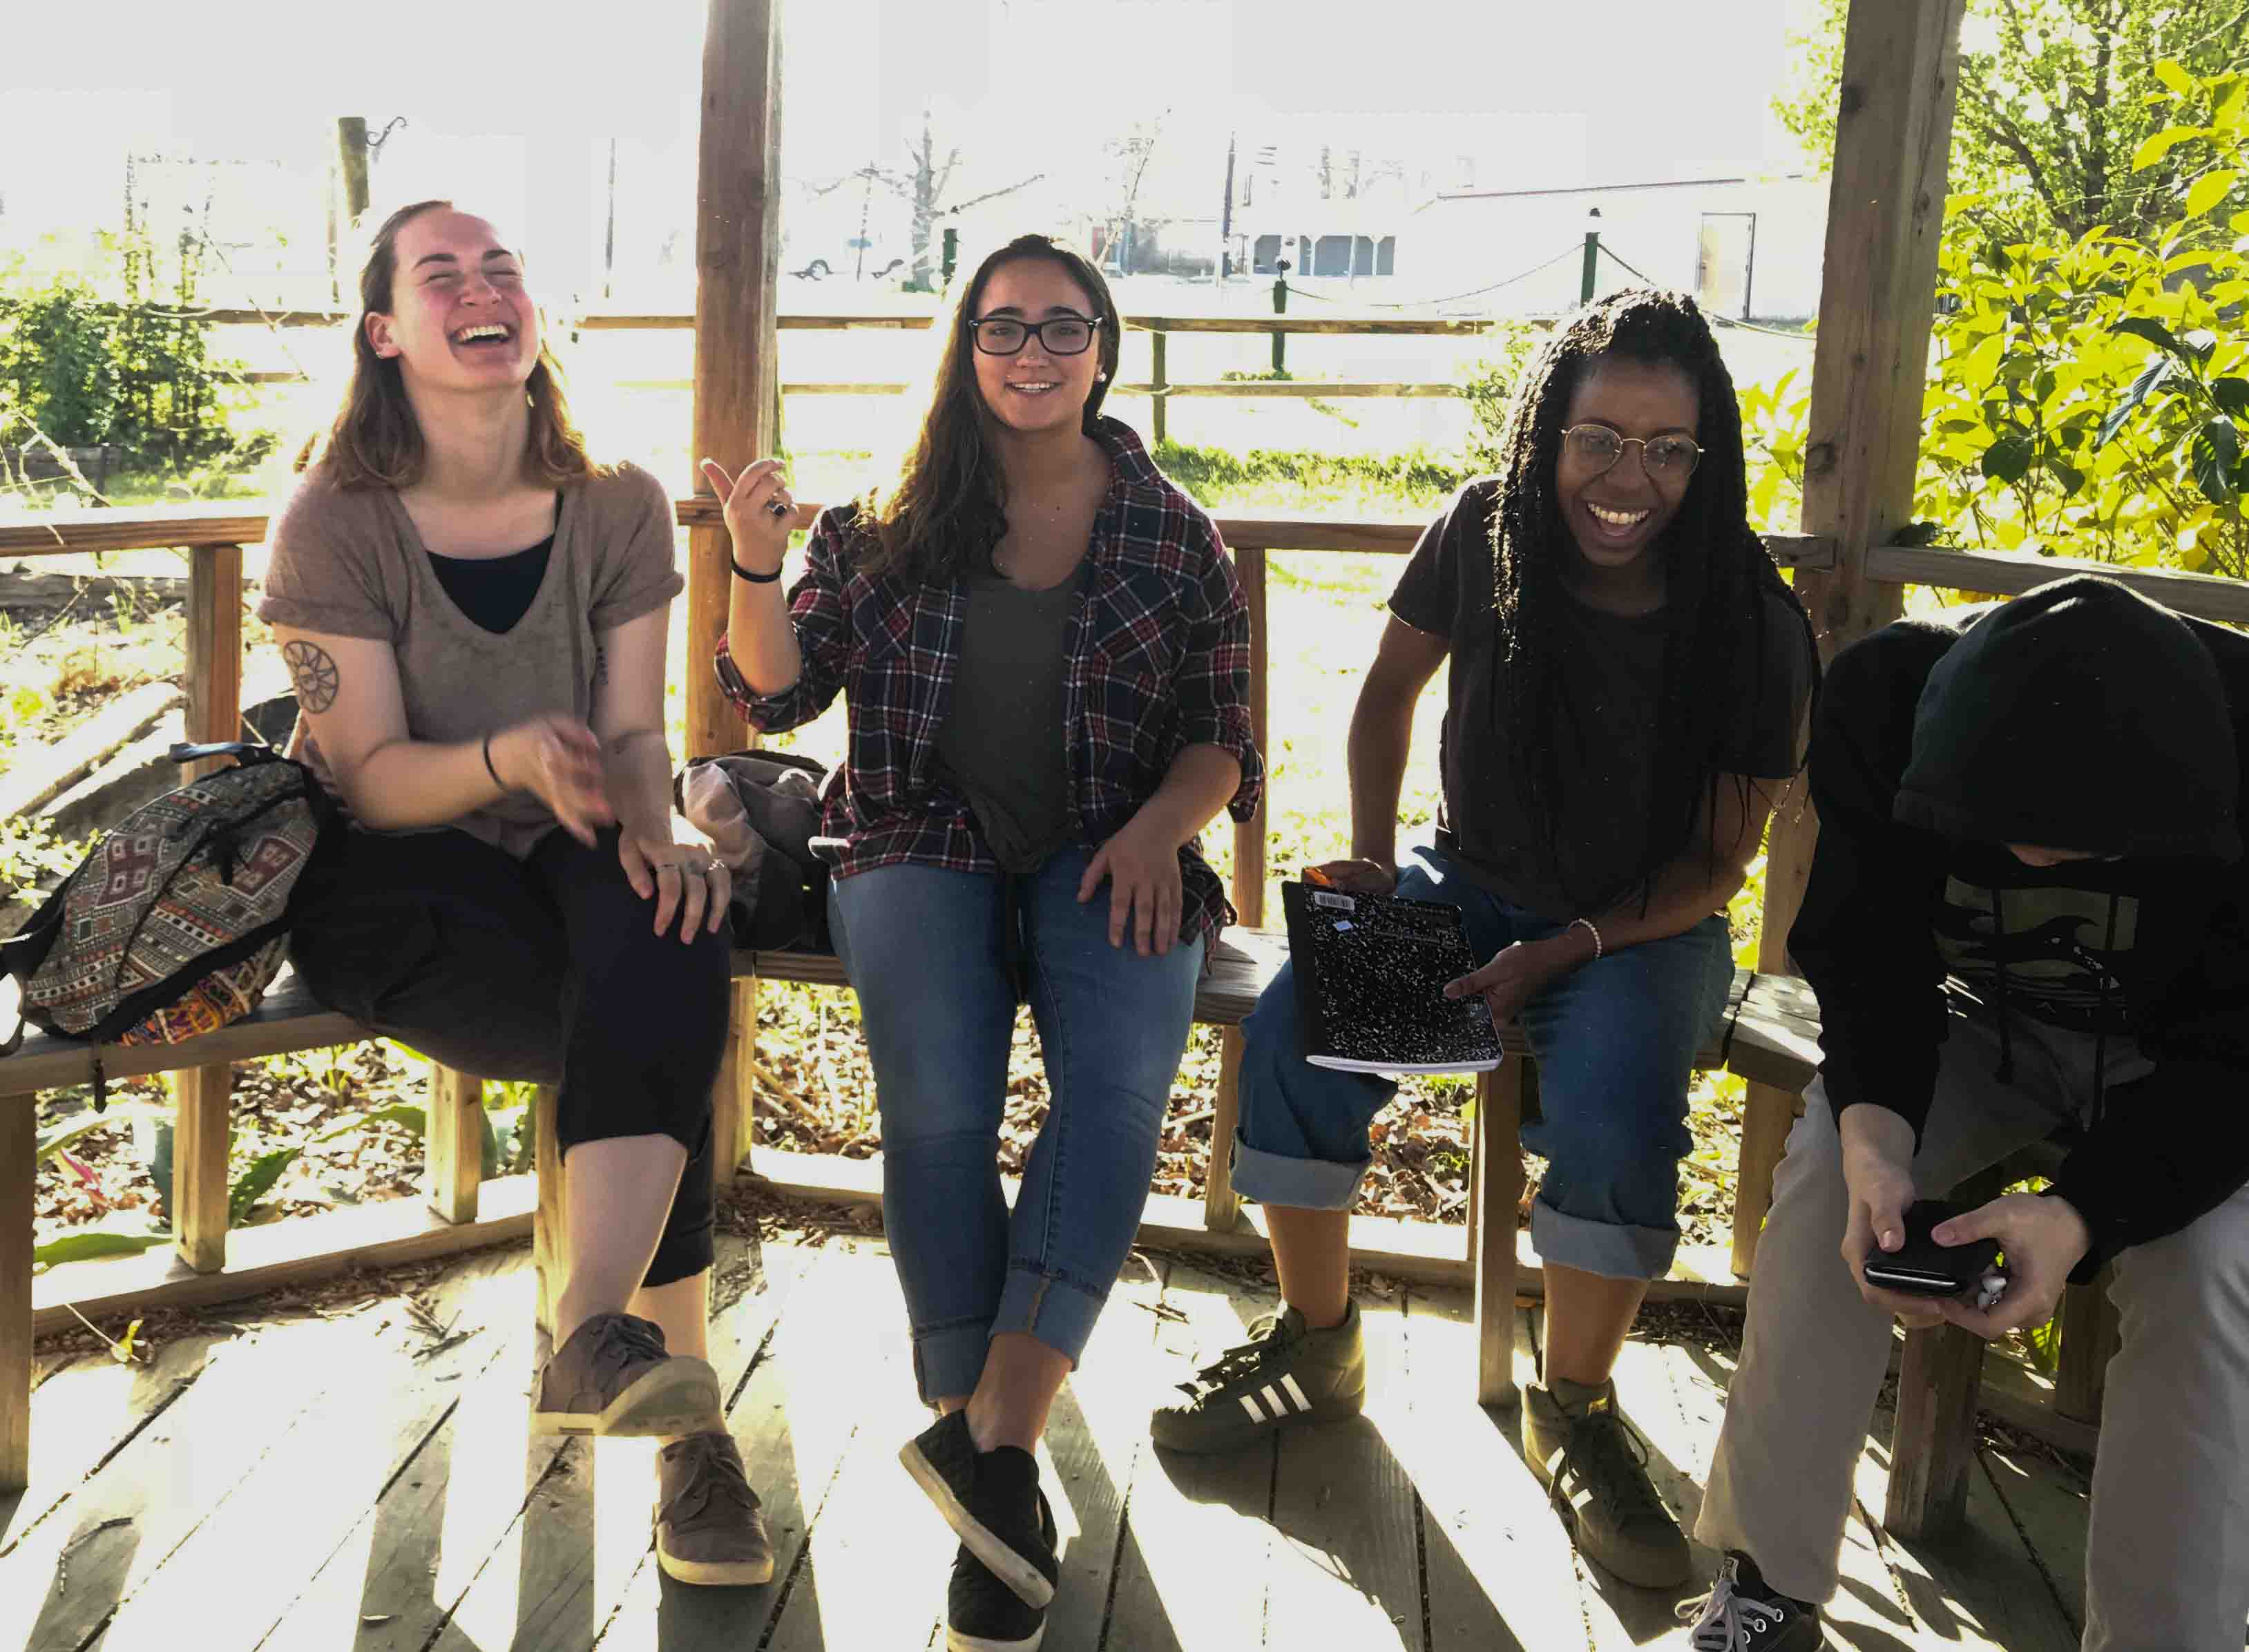 Students laugh during their Alternative School Break trip to serve and learn about the Texas criminal justice system.